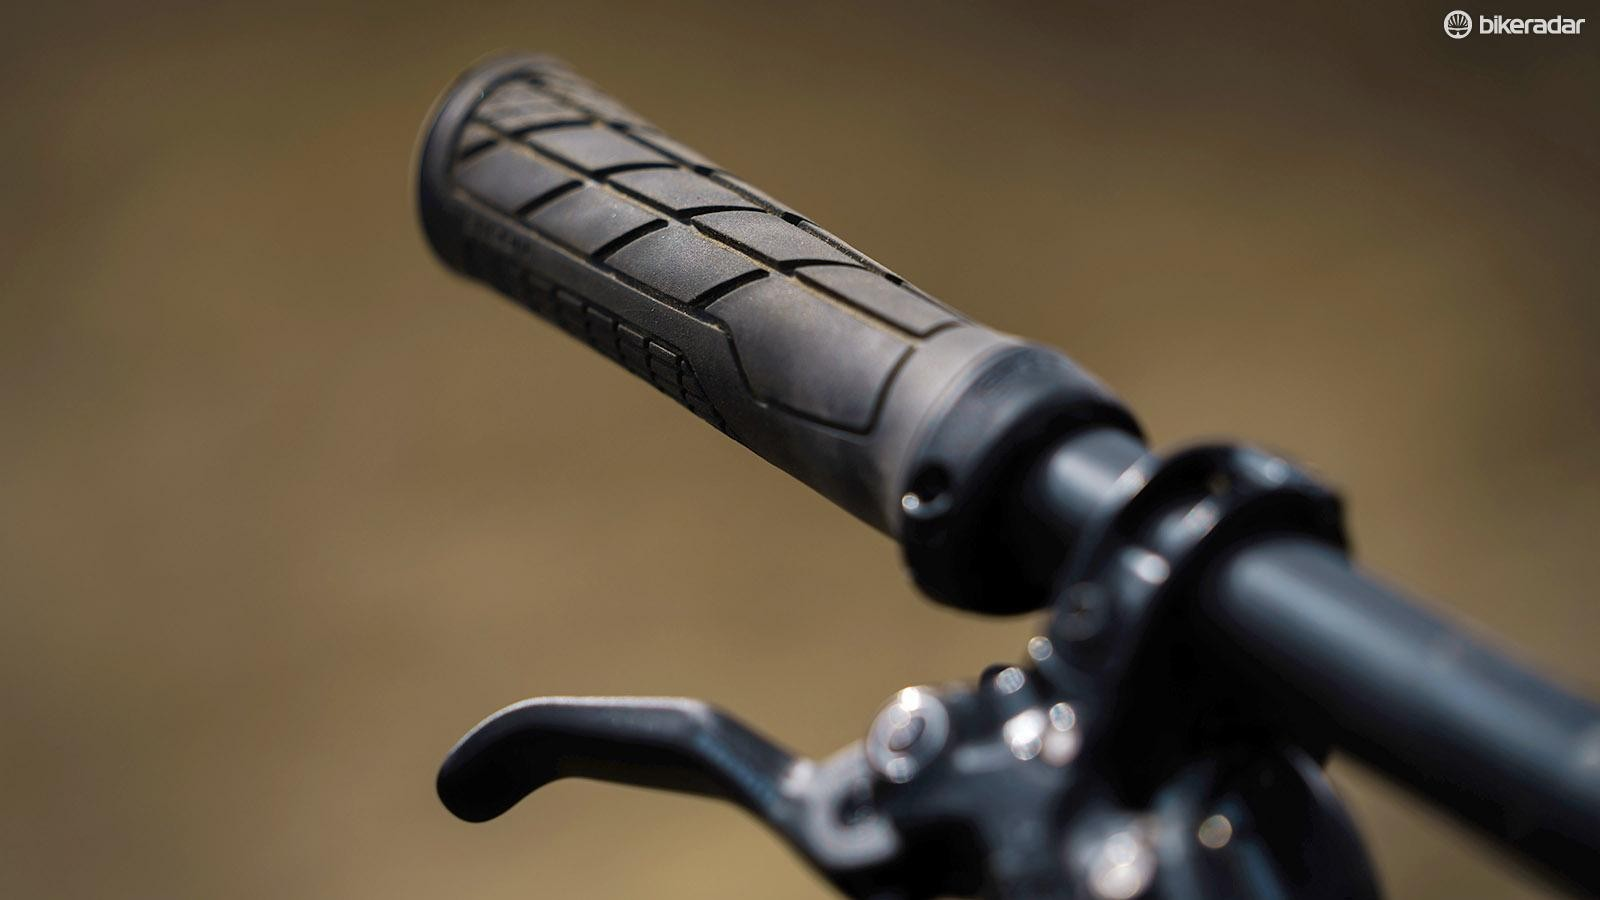 Ergon grips proved very comfortable on long rides